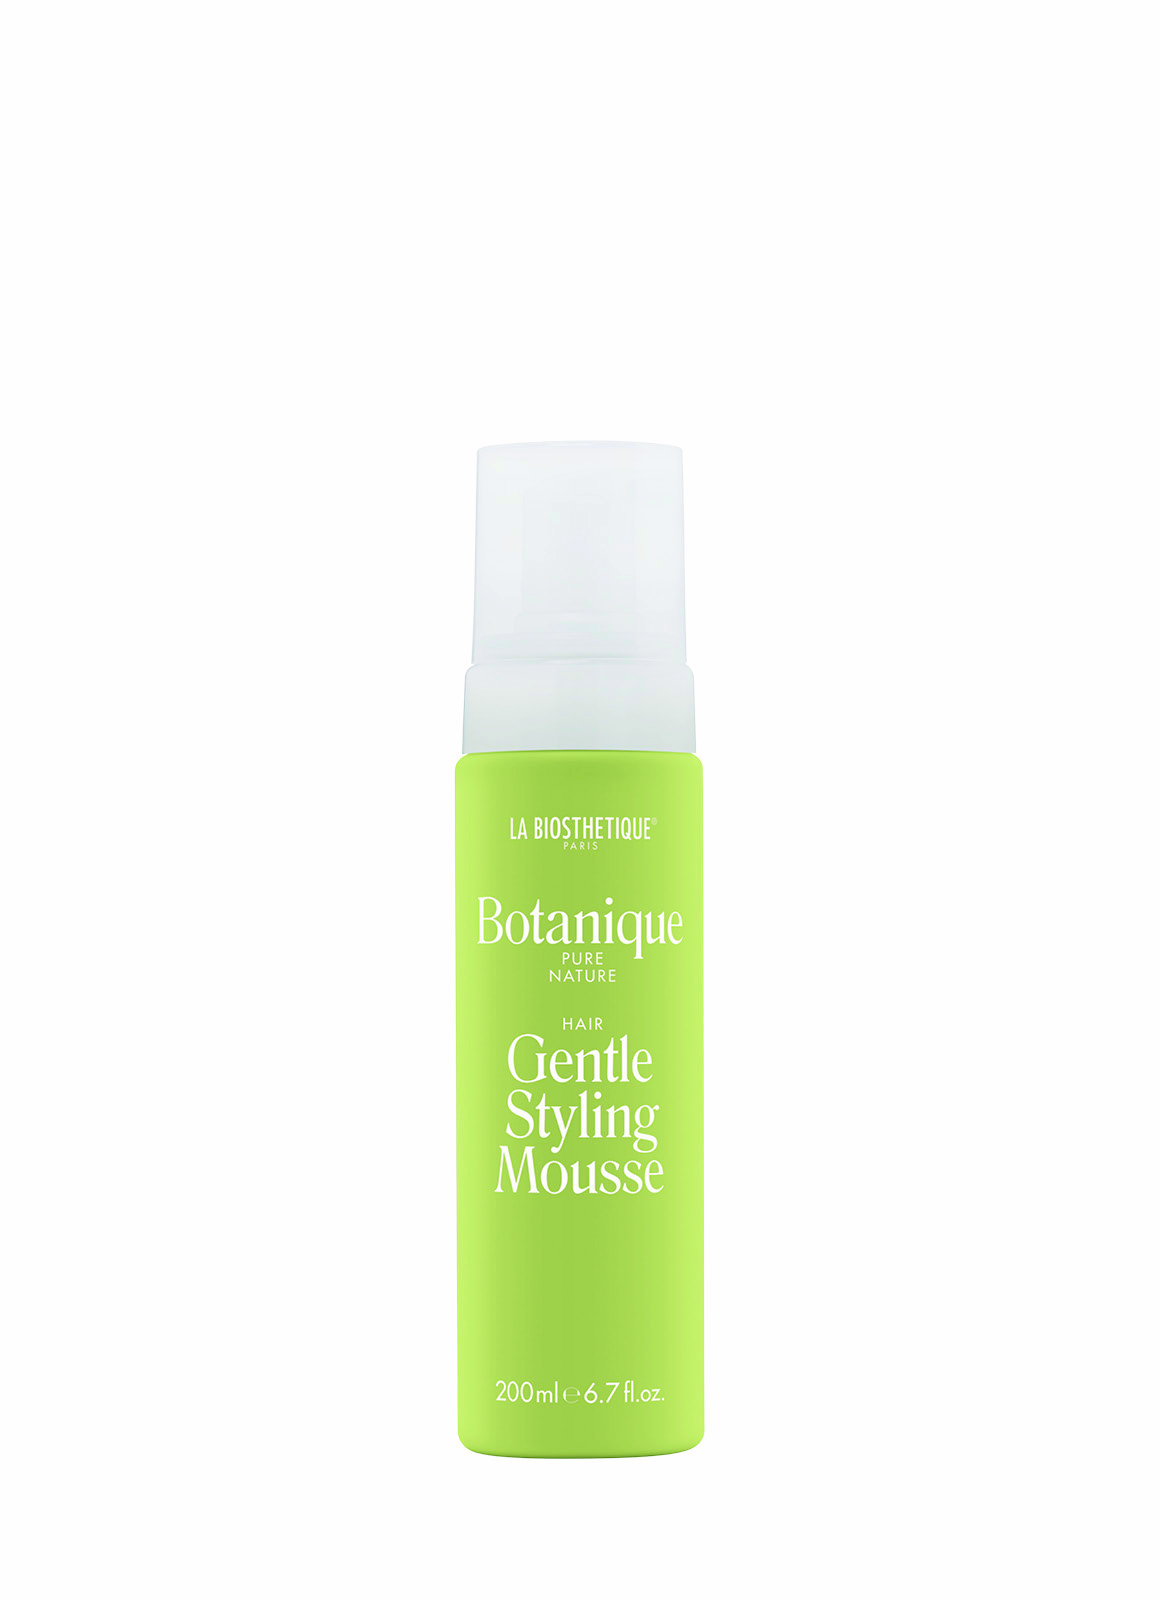 Hair Botanique Gentle Styling Mousse 200ml